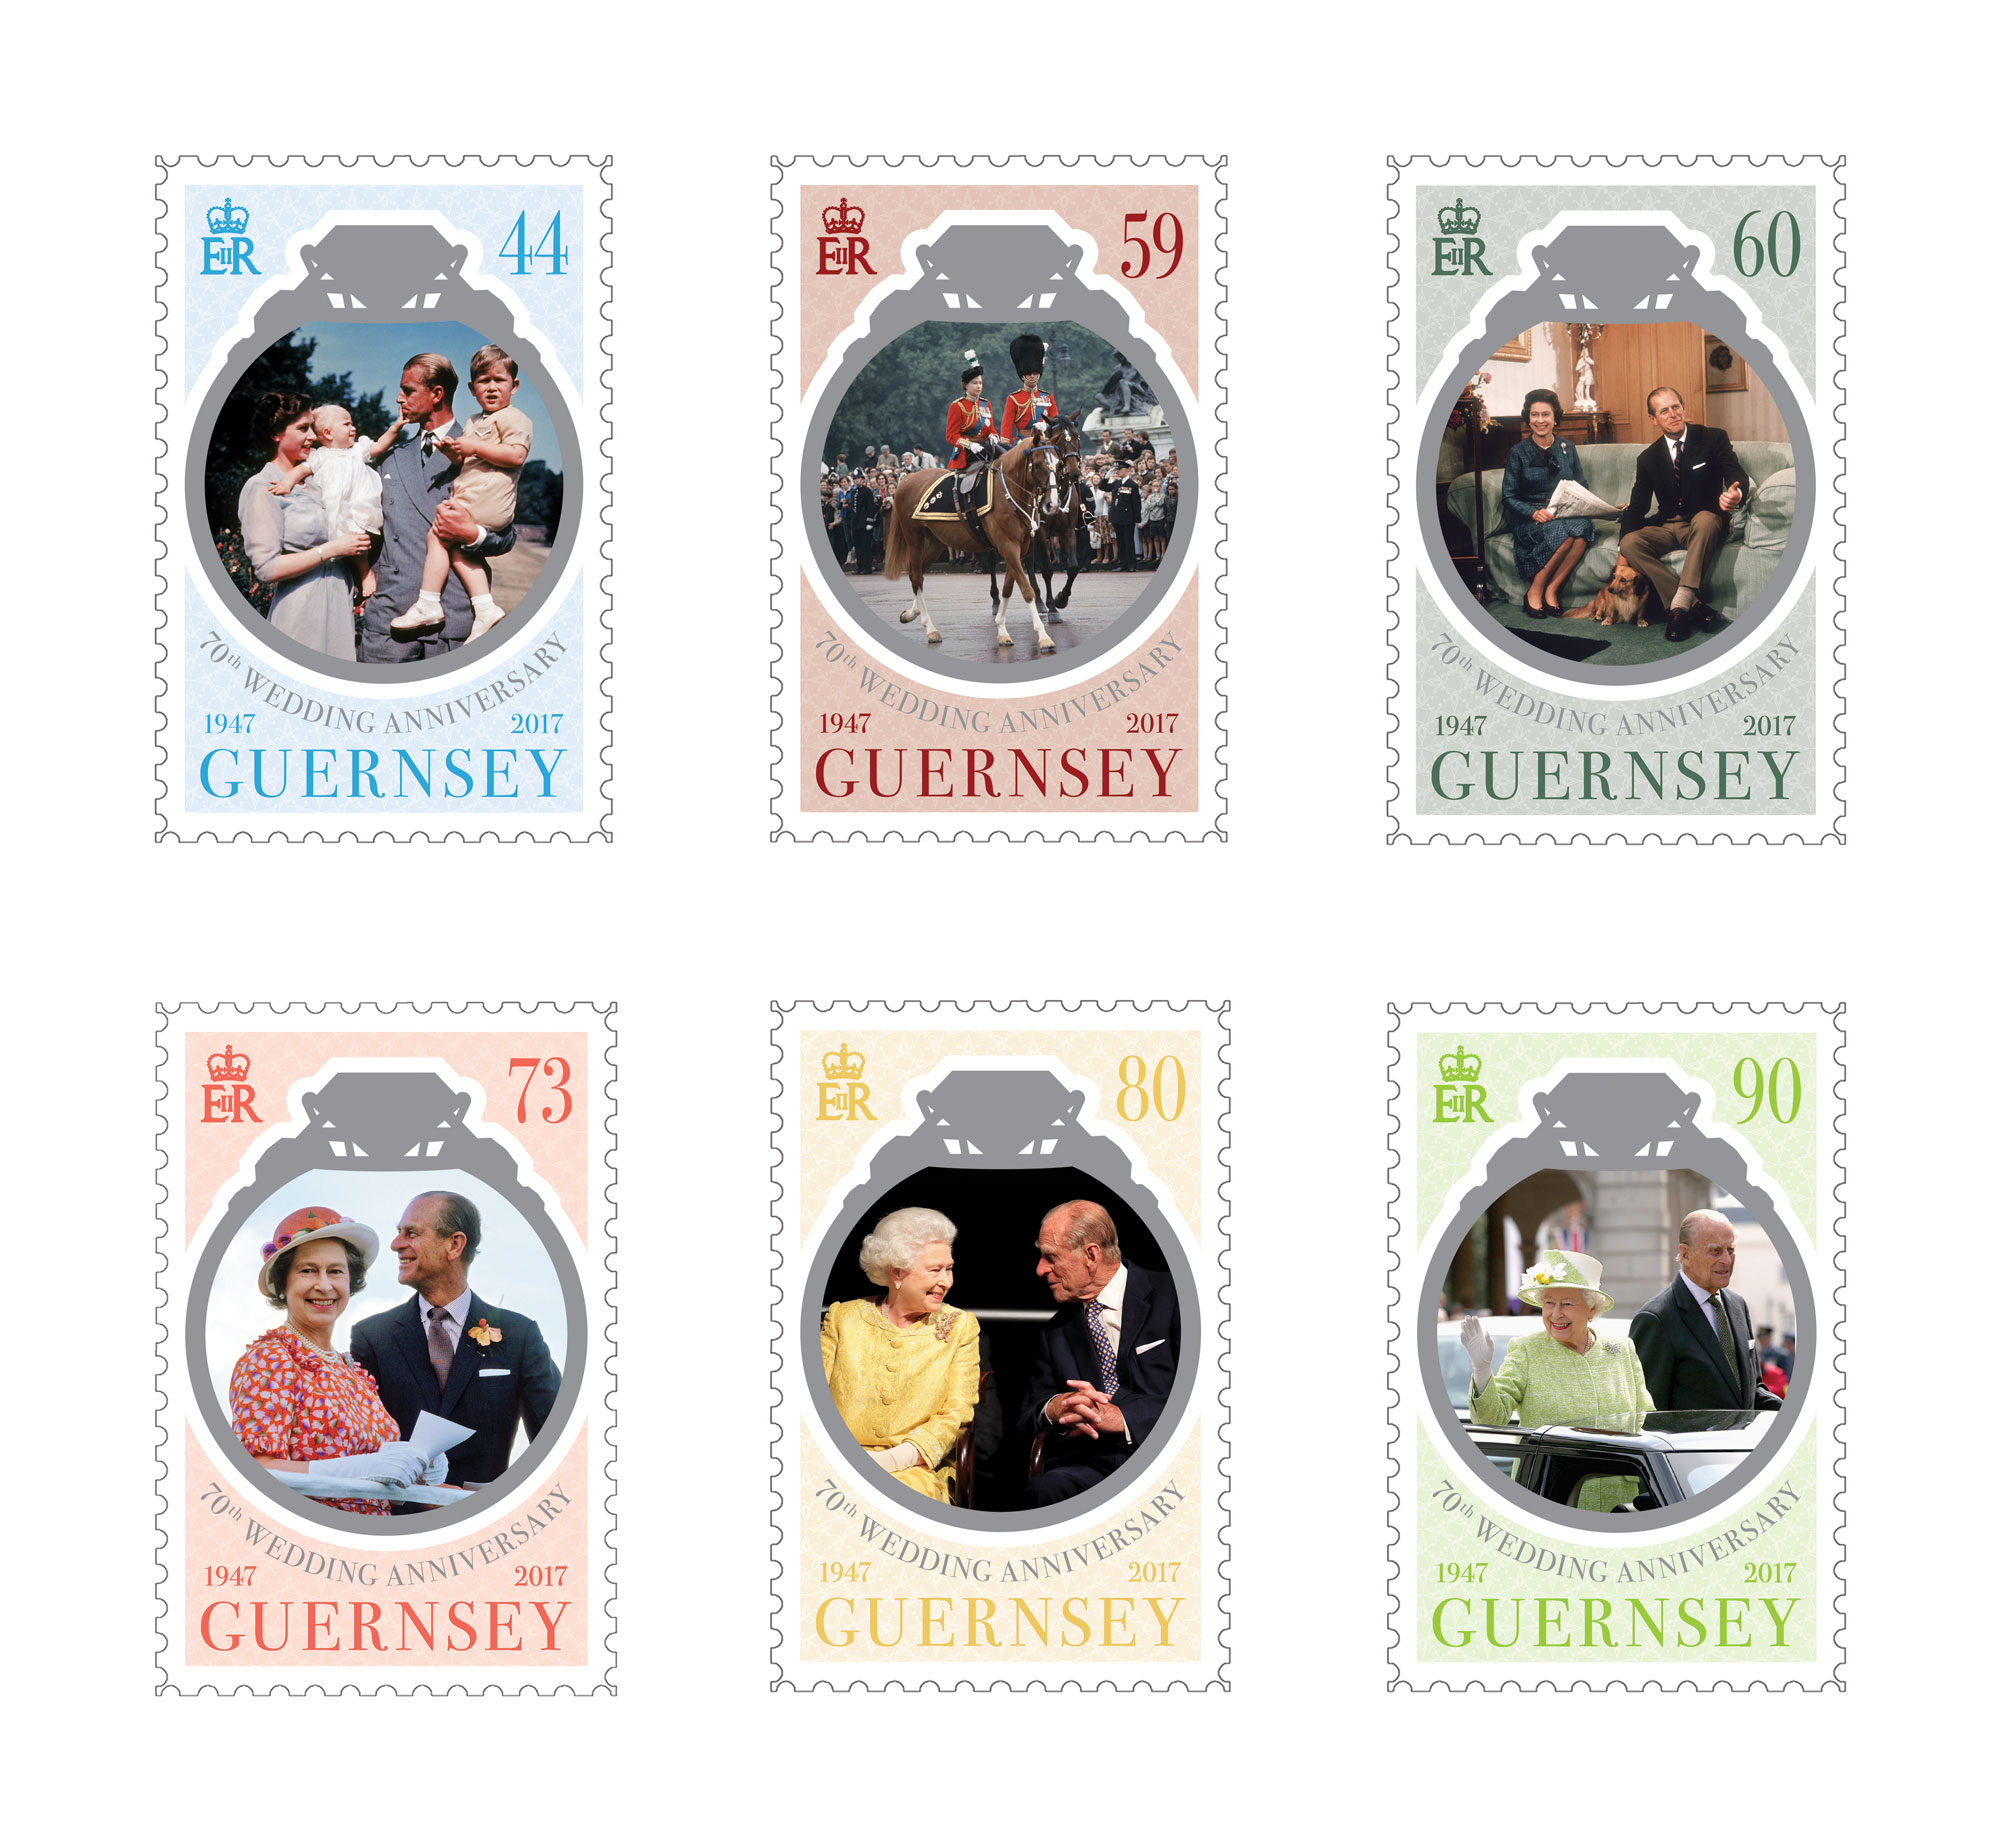 Stamps commemorate the 70th Wedding Anniversary of The Queen and The Duke of Edinburgh